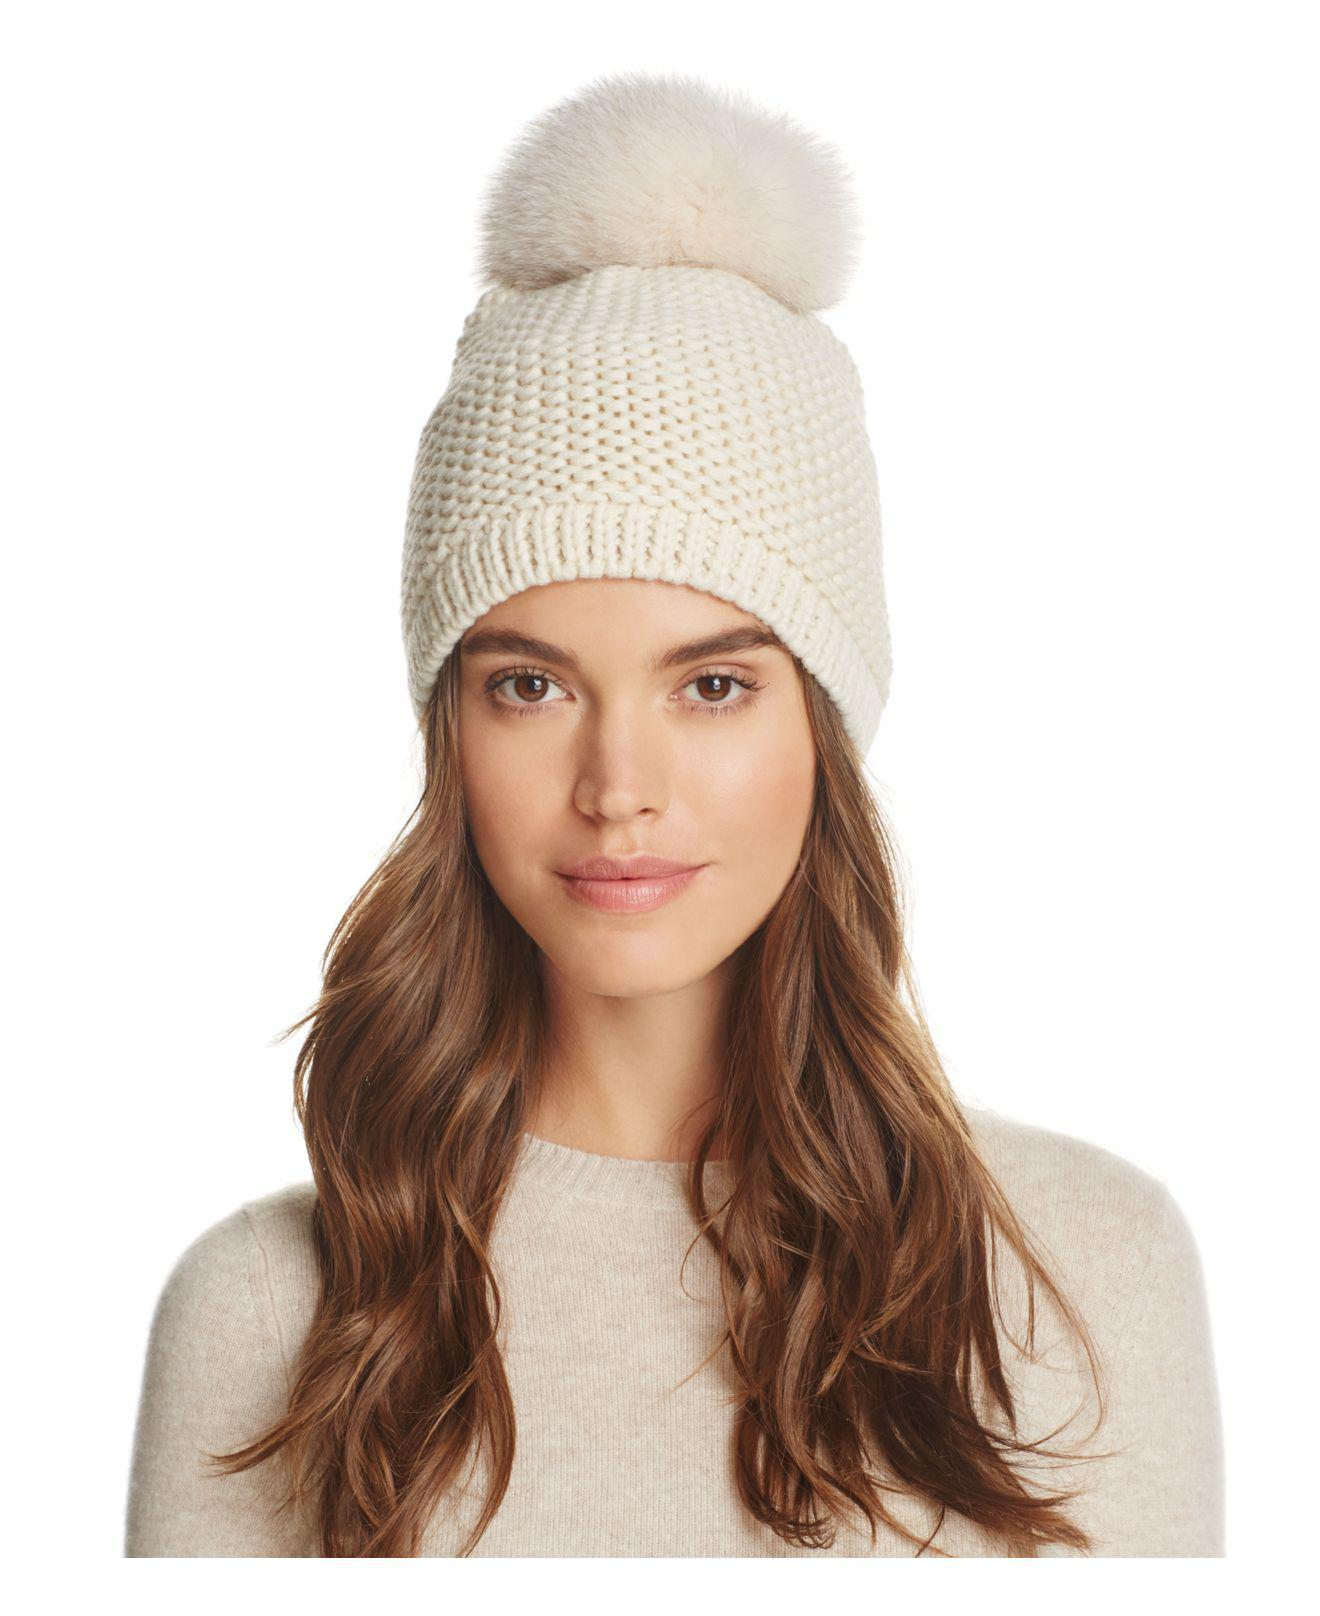 Lyst - Kyi Kyi Slouchy Hat With Fox Fur Pom-pom in Natural 6981bf73010